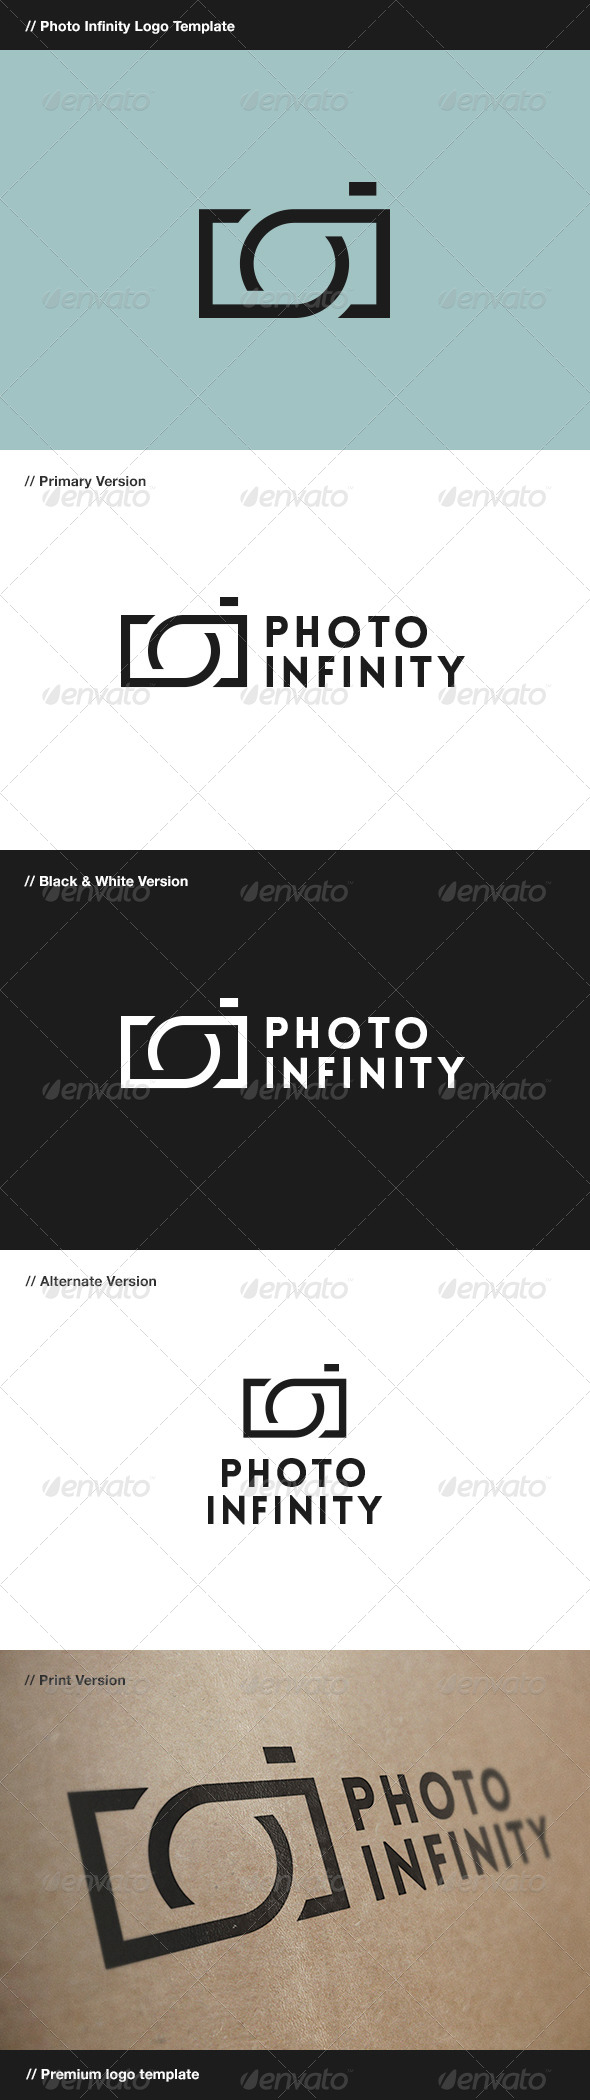 GraphicRiver Photo Infinity 7885377